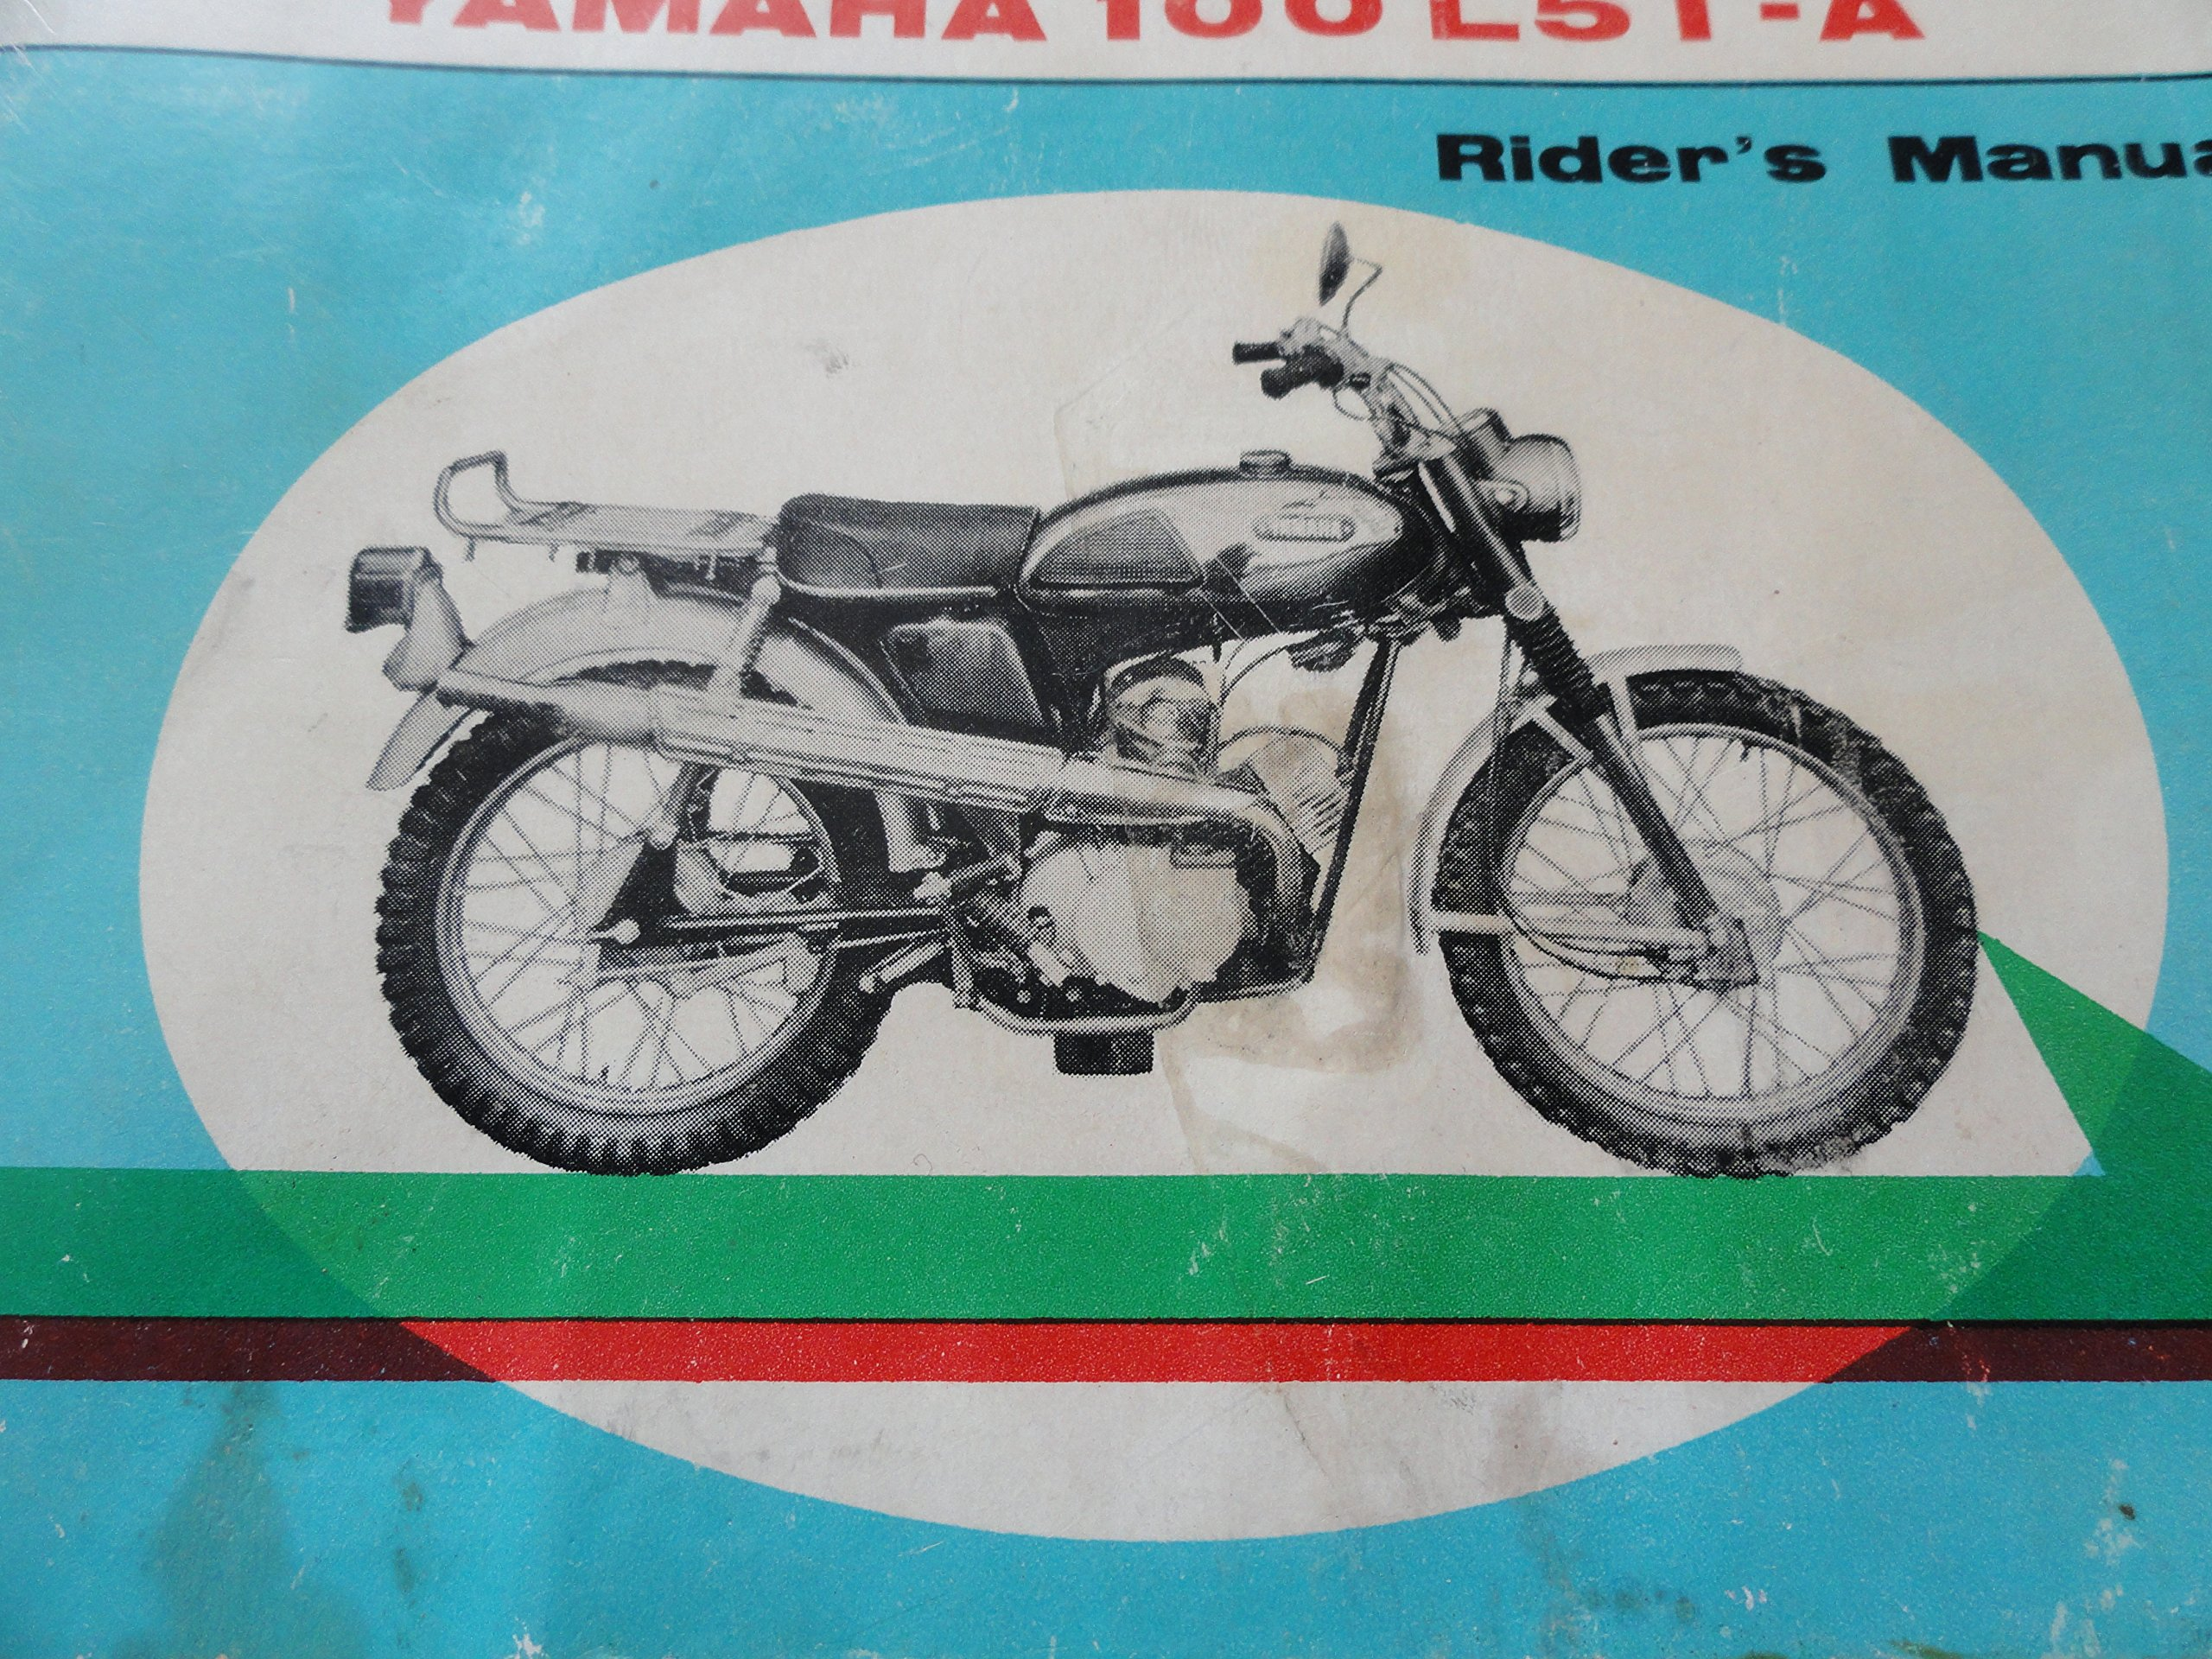 Yamaha 100 L5T-A Vintage Motorcycle Owners Manual: Yamaha ... on